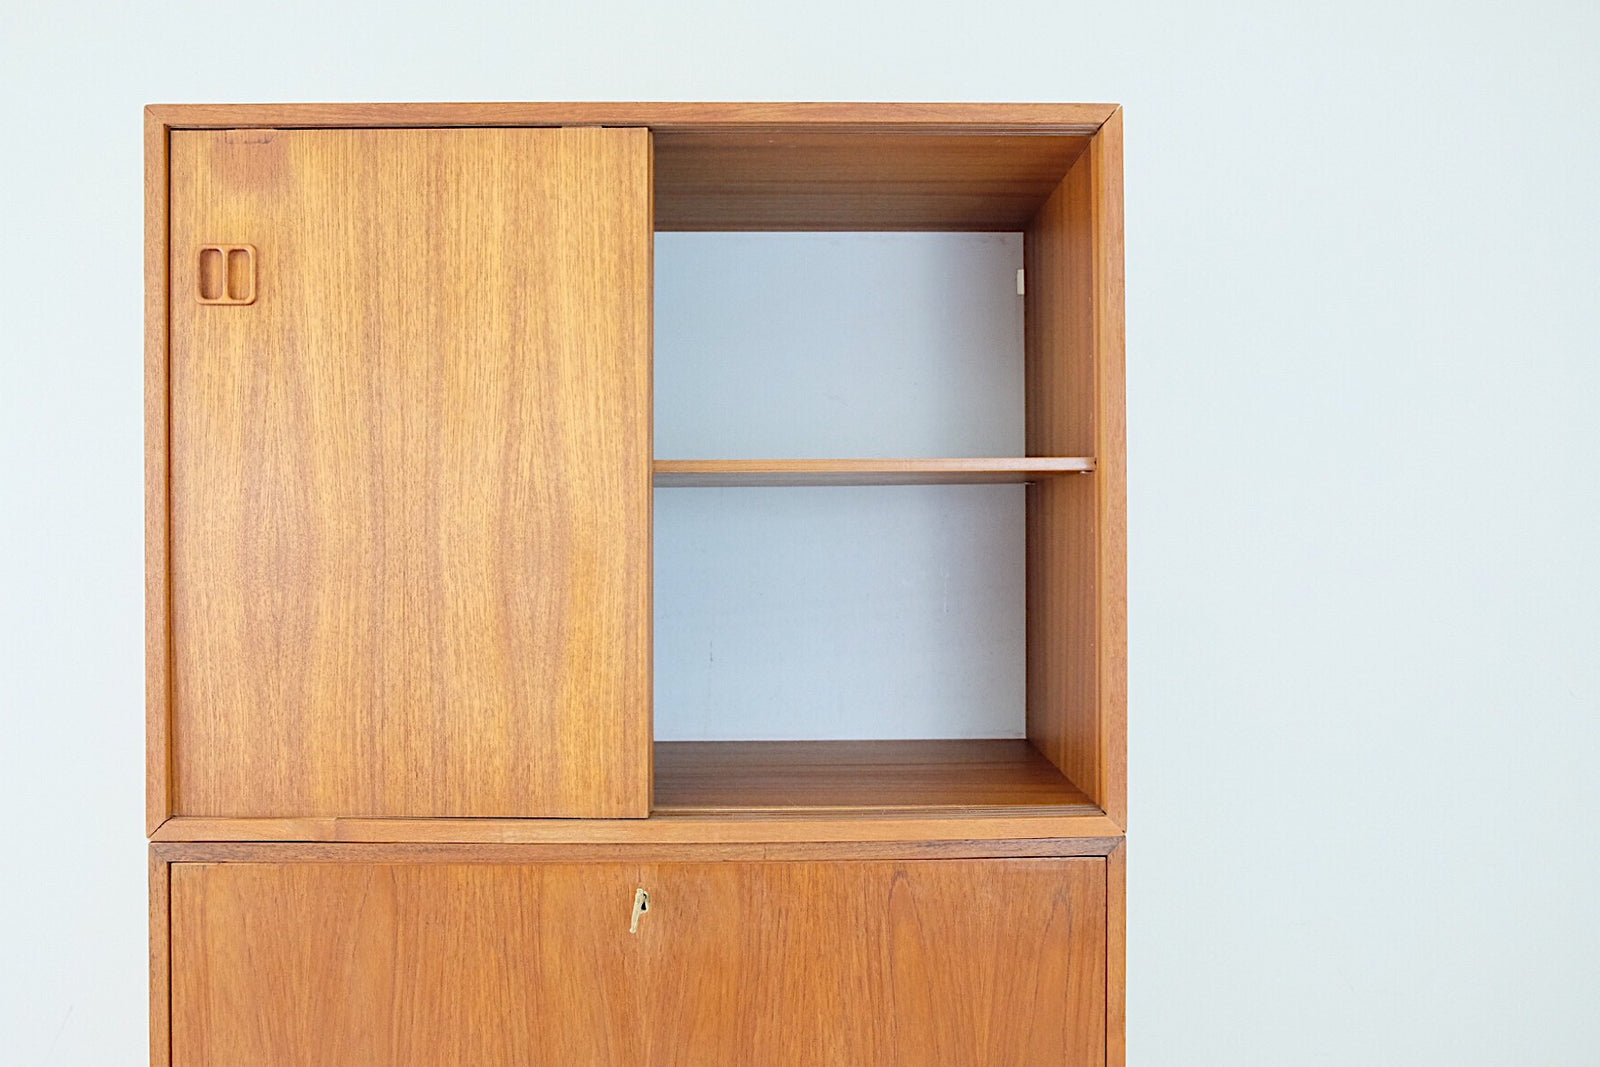 Scandinavian Three Piece Mid Century Modern Teak Veneer Wall Cabinets Carved Square Handles Secretary Fold Down Door